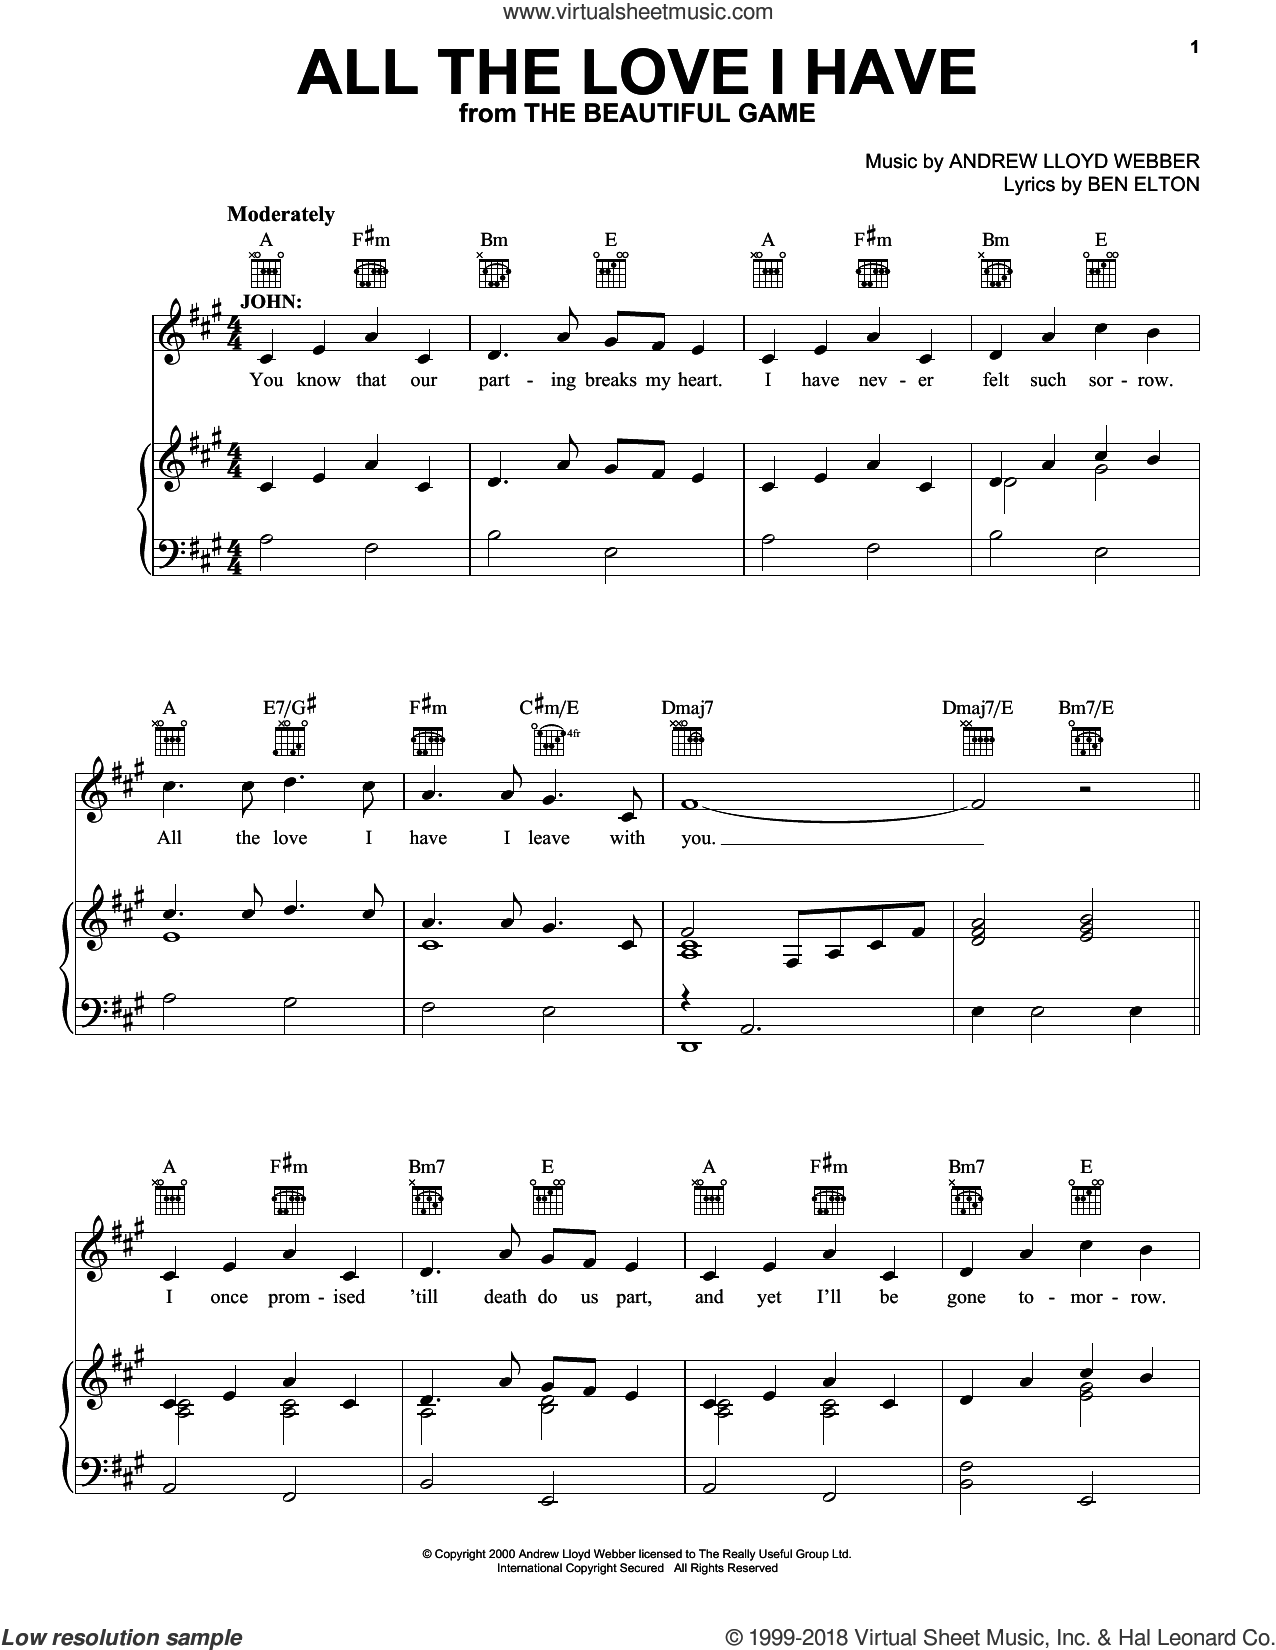 All The Love I Have sheet music for voice, piano or guitar by Andrew Lloyd Webber and Ben Elton, intermediate skill level